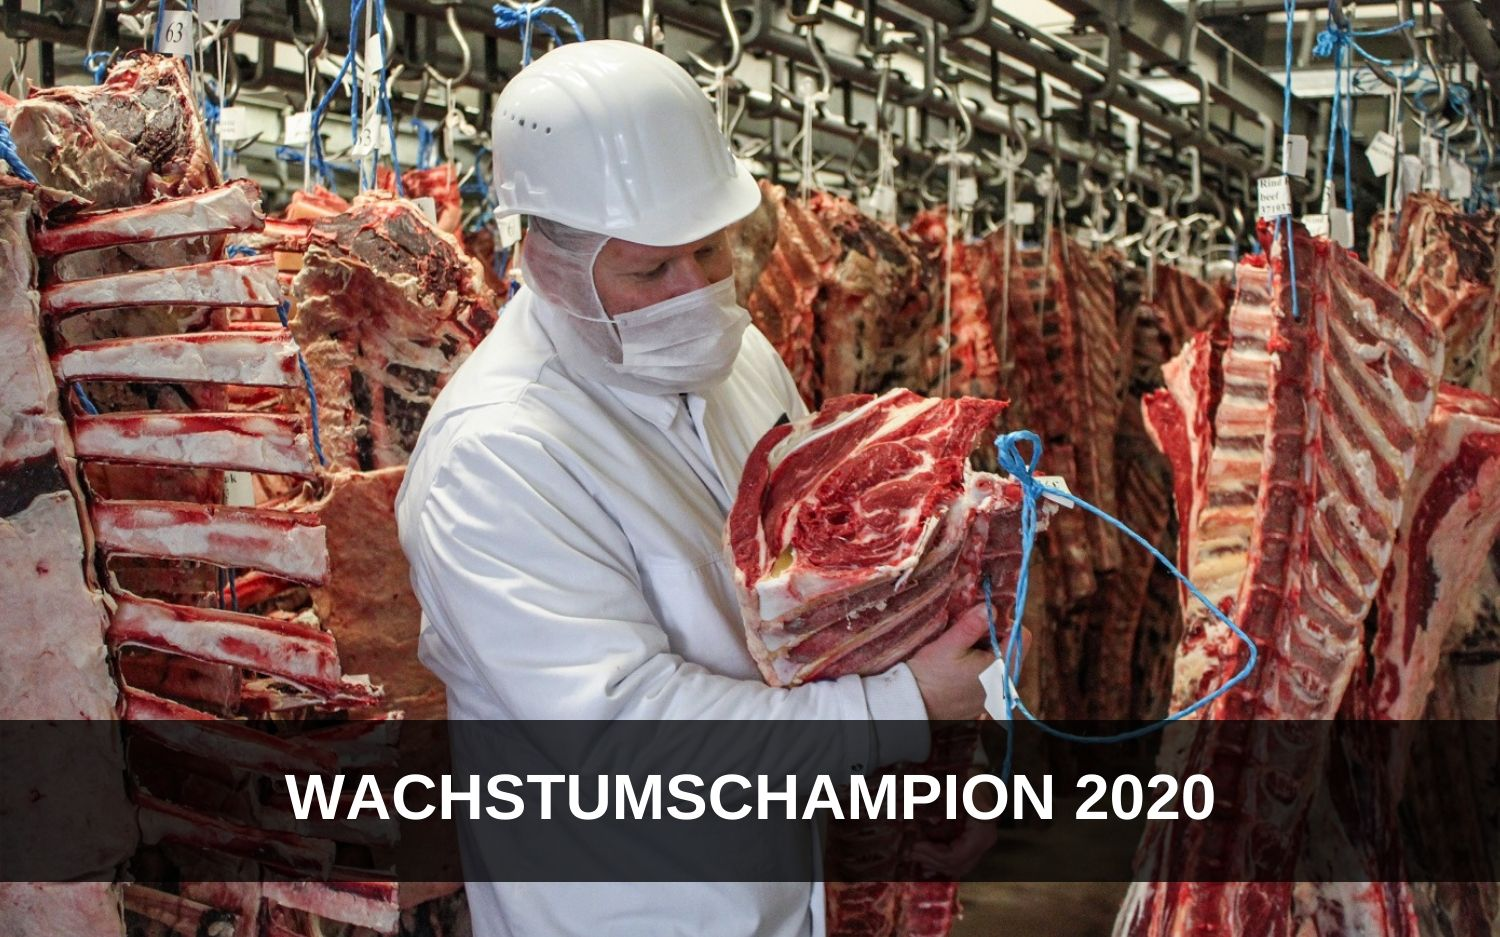 True Wilderness ist Wachstumschampion 2020